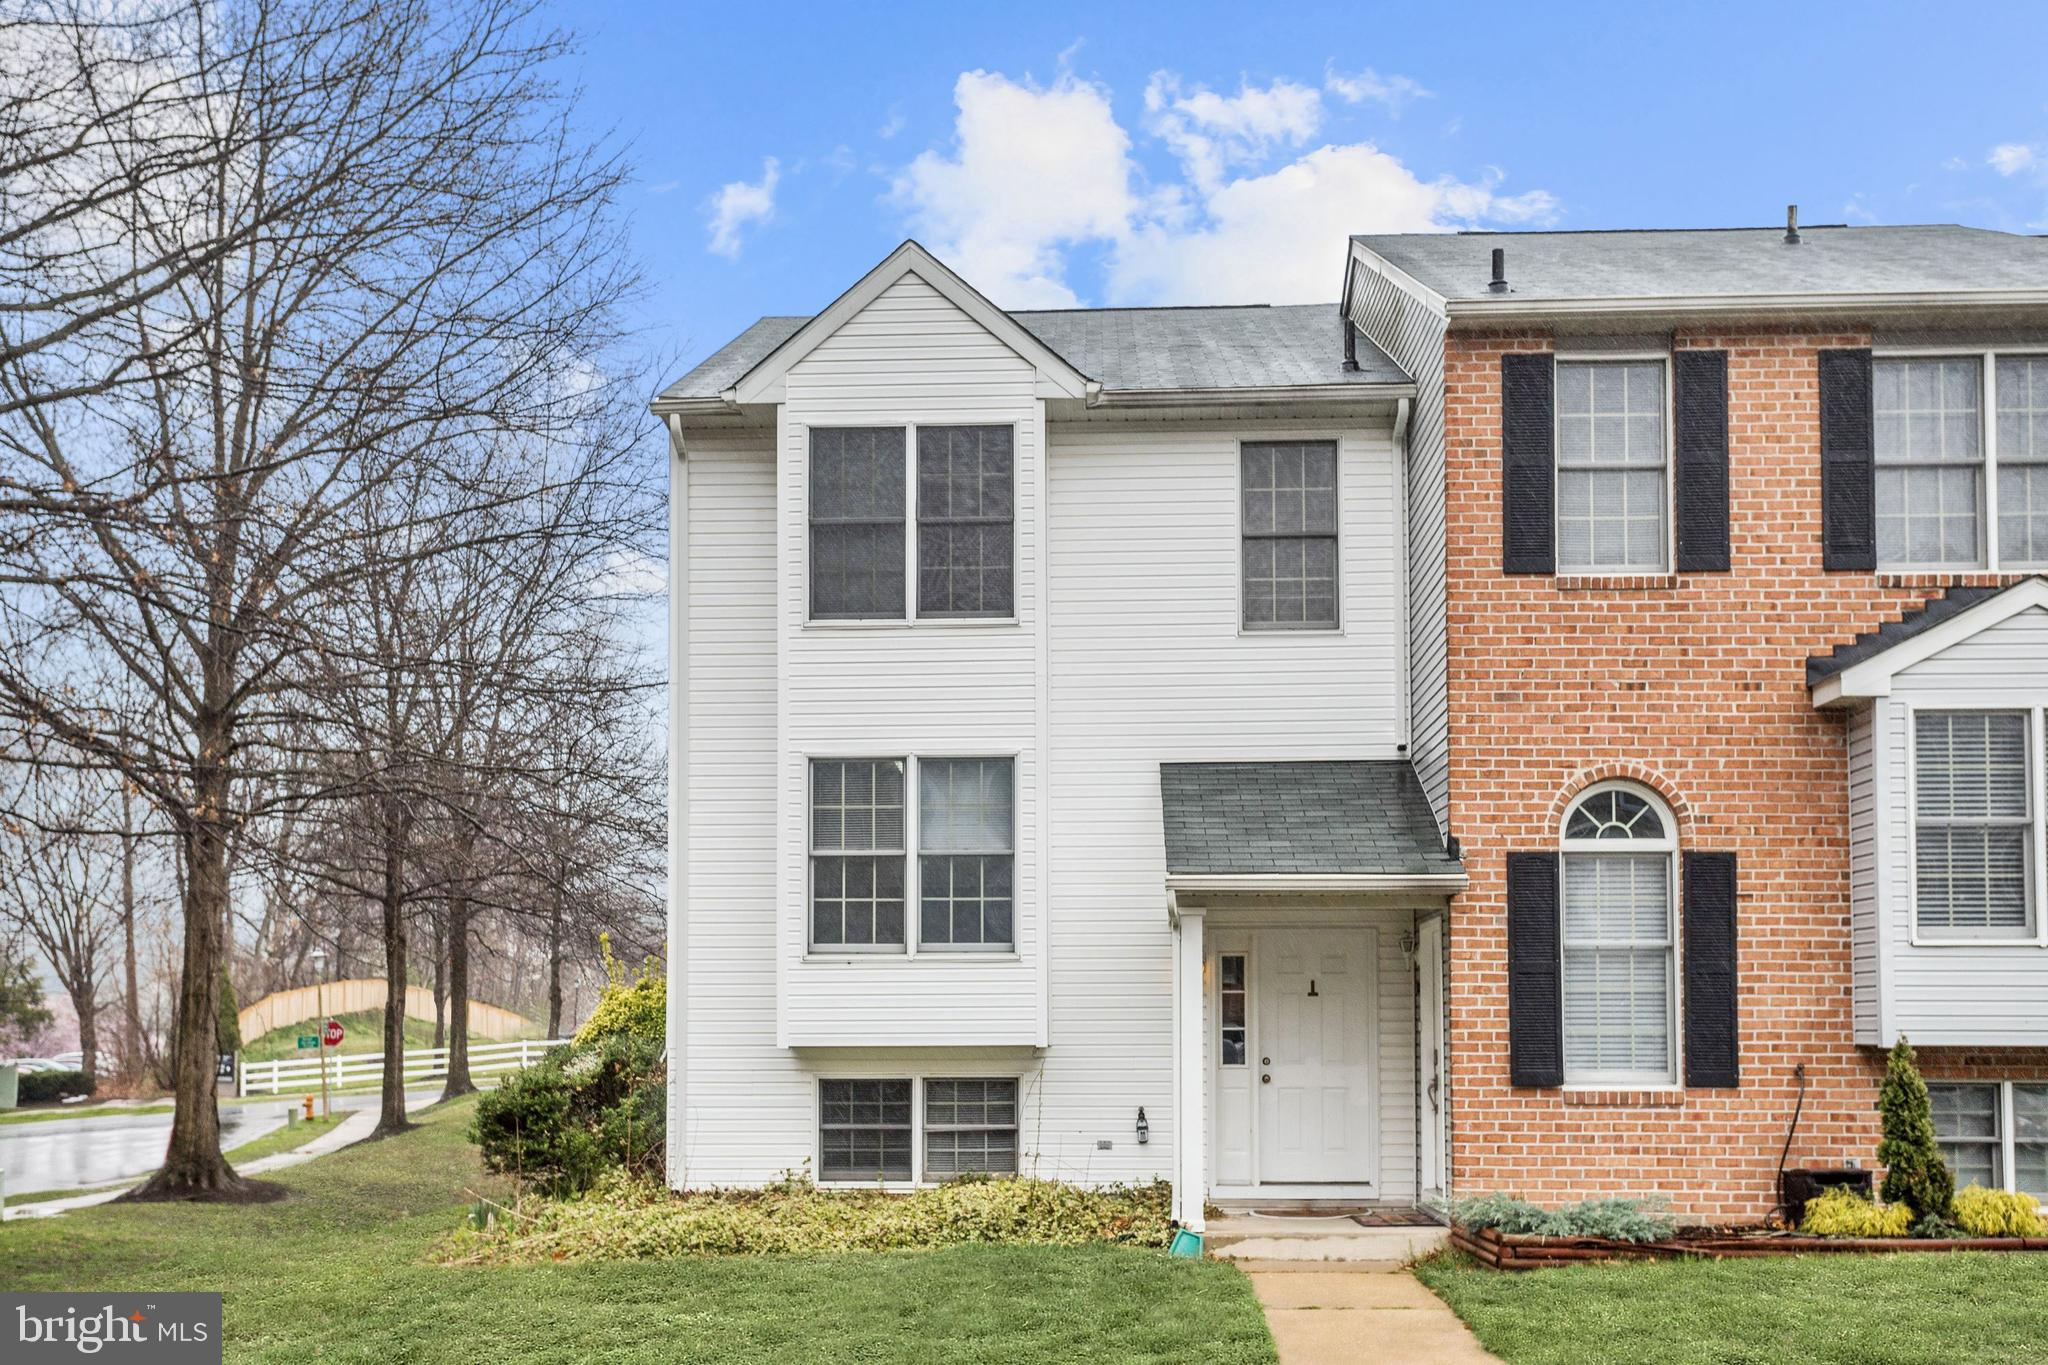 Beautiful end of row townhome in the Wilder community of Ellicott City boasts many updates that incl